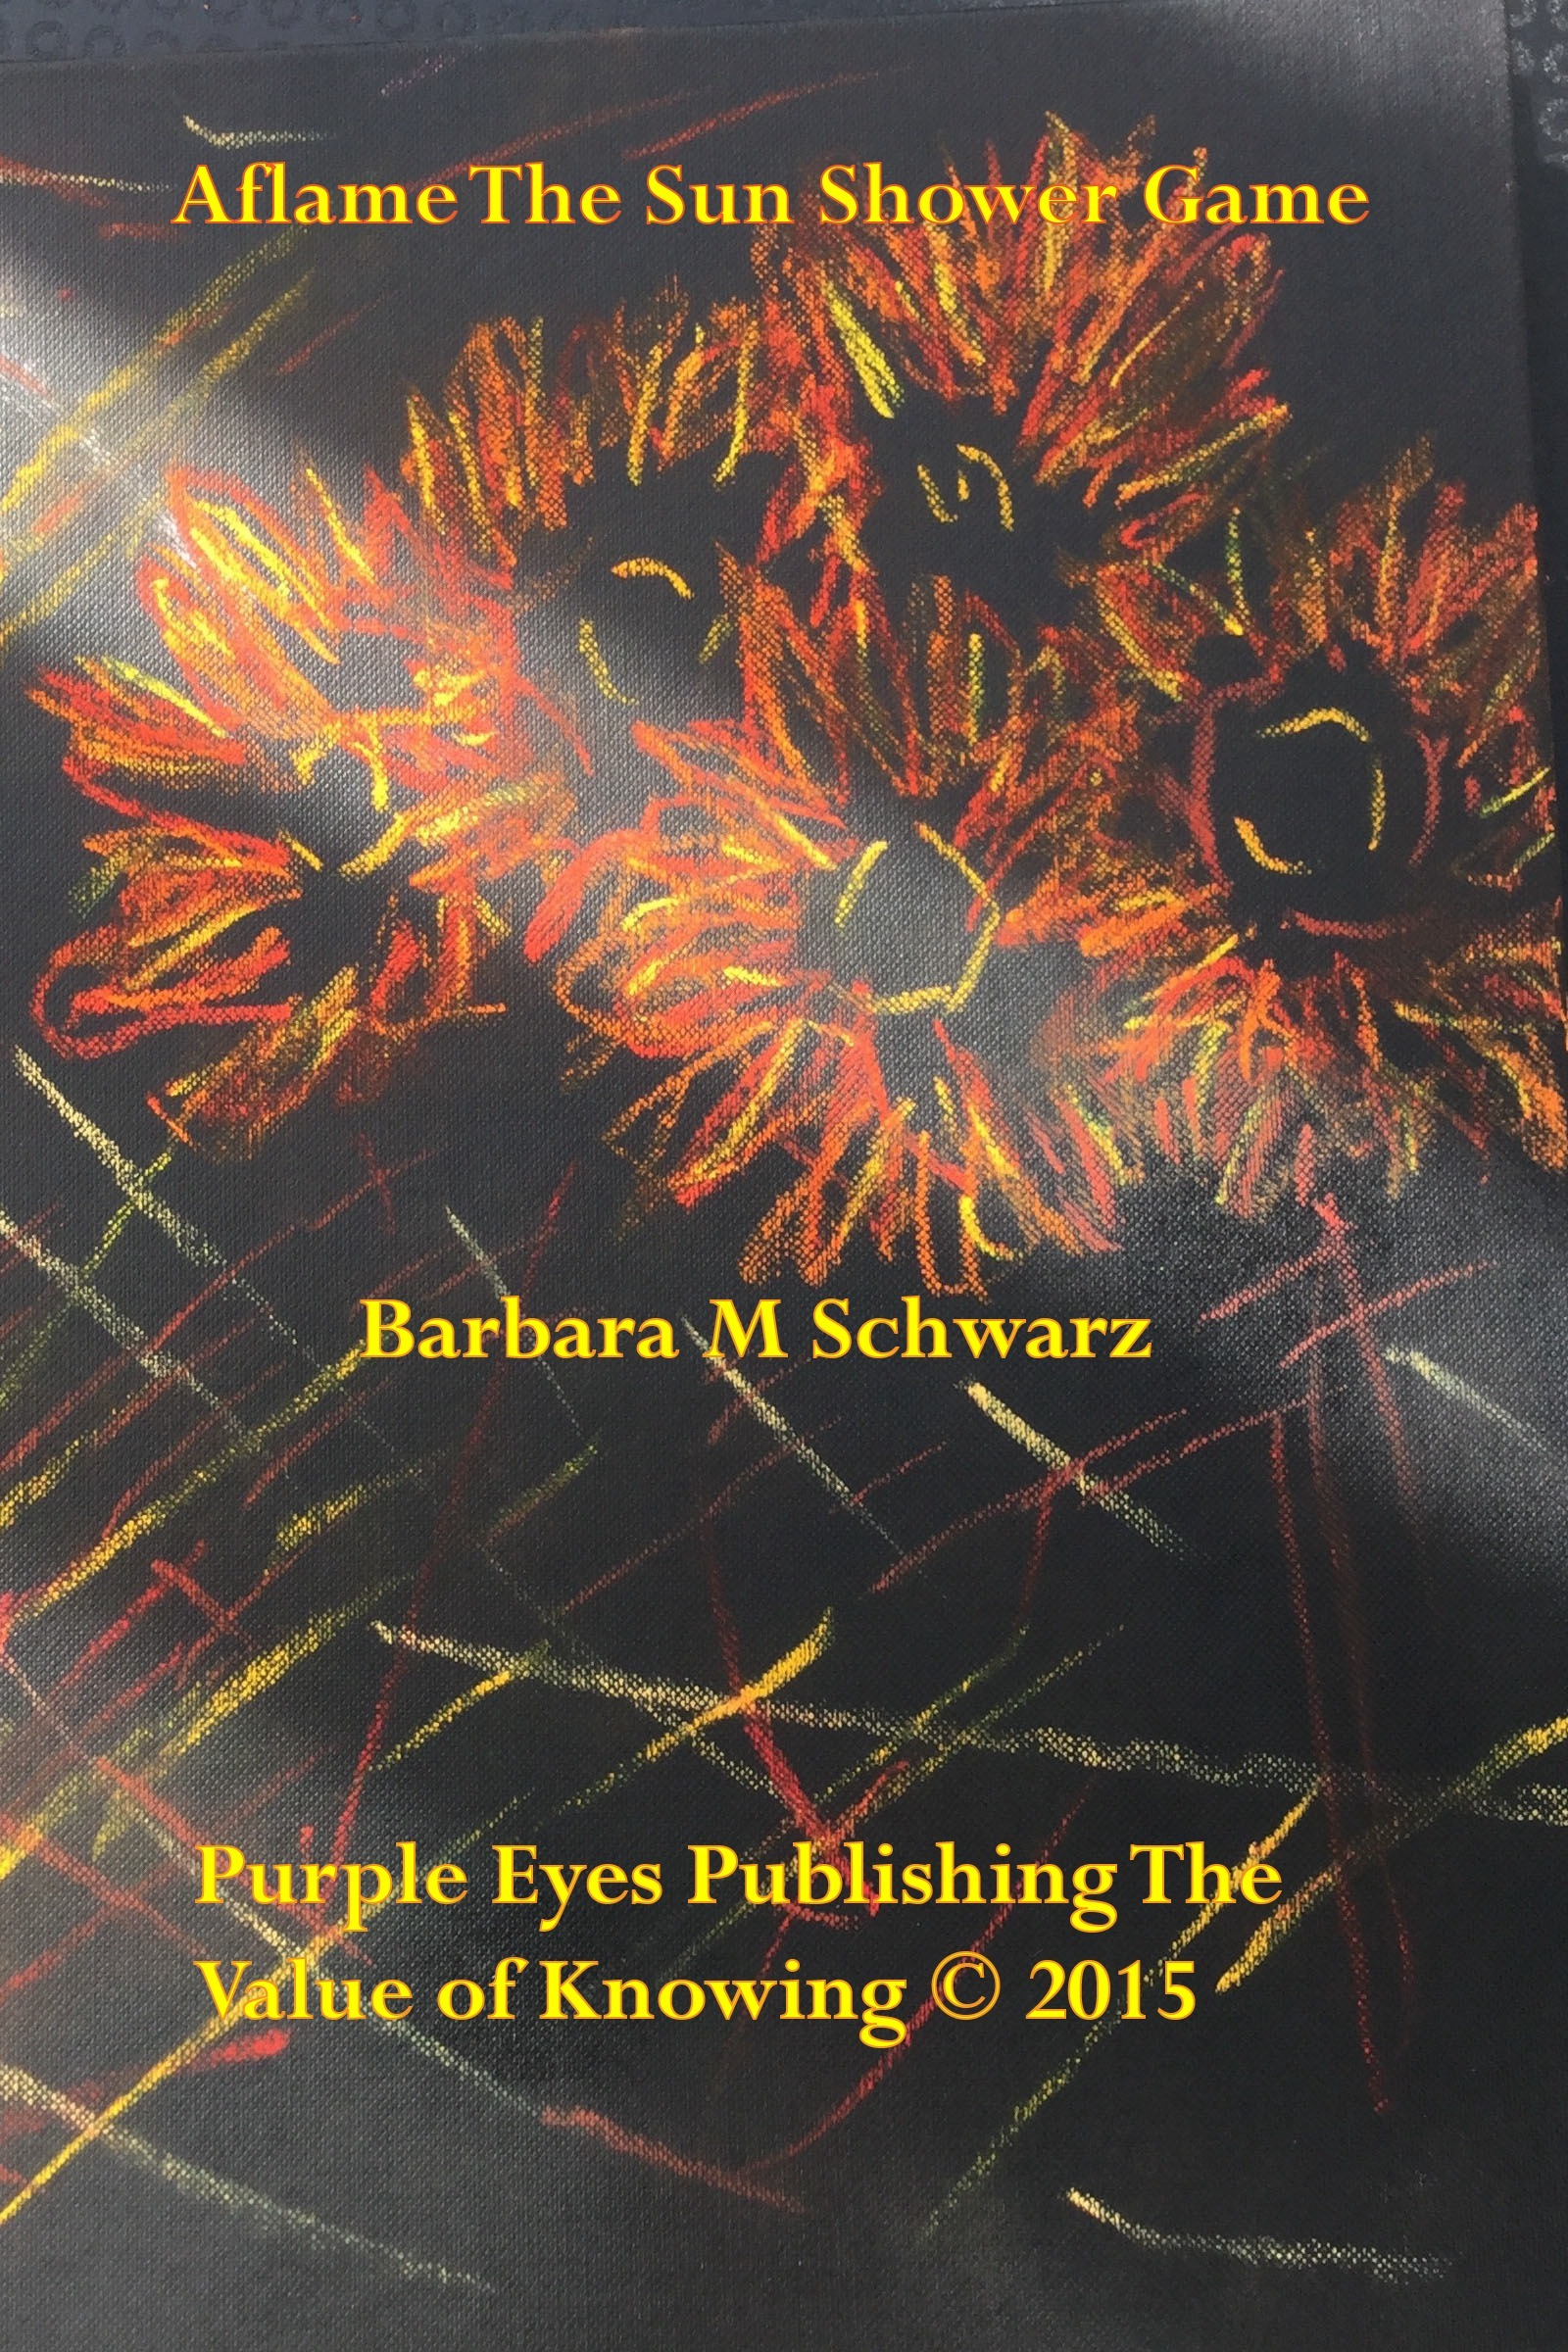 Aflame The Sun Shower Game  by  Barbara M Schwarz